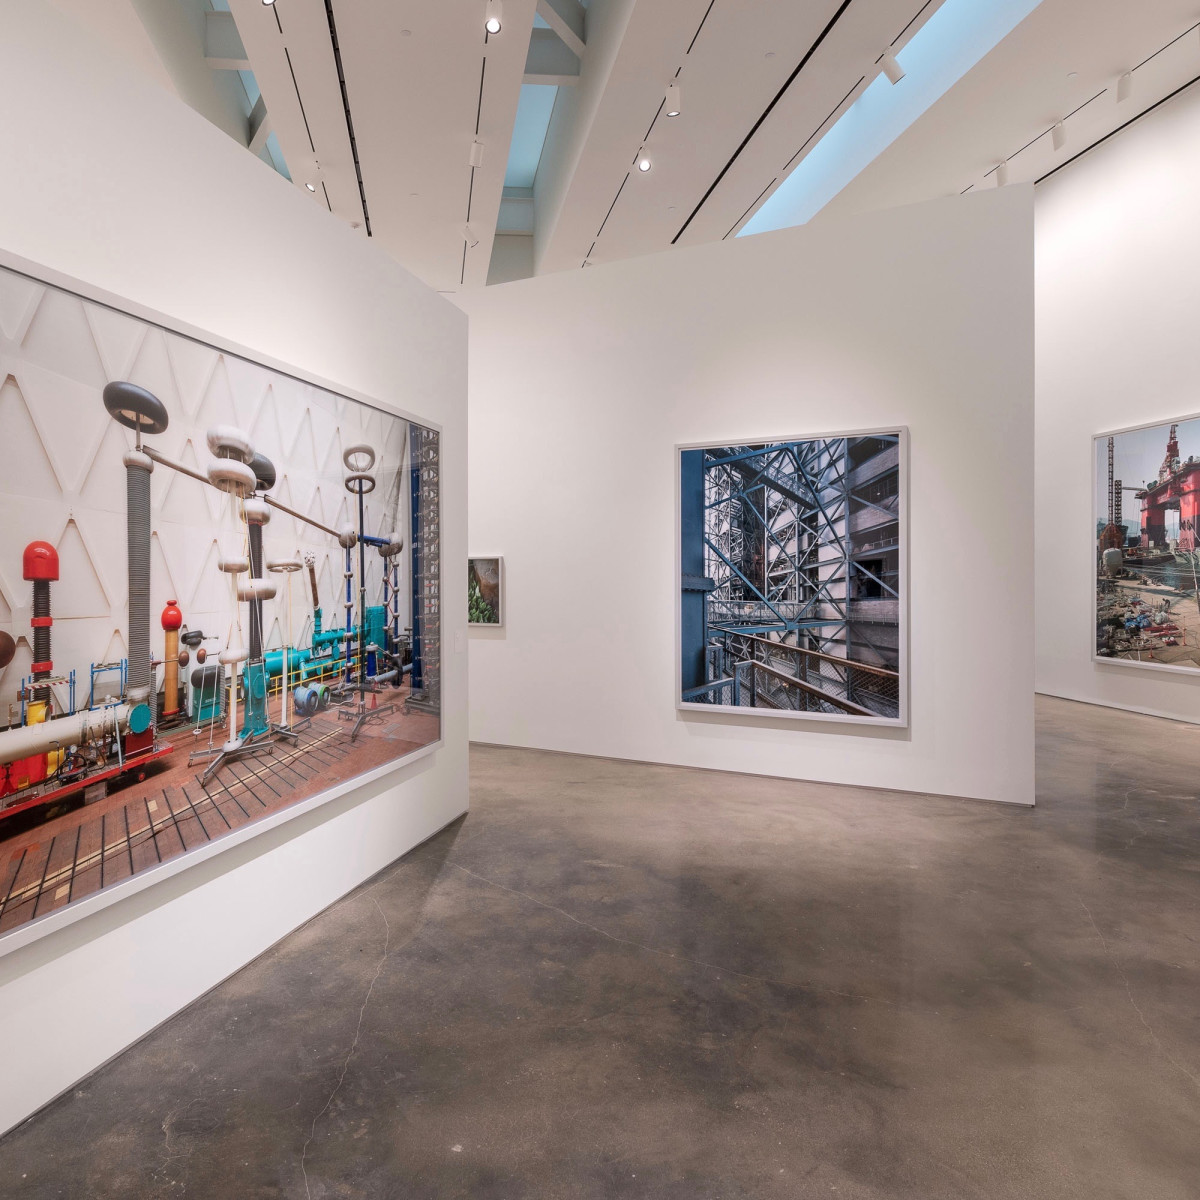 Rice Moody Center: Thomas Struth